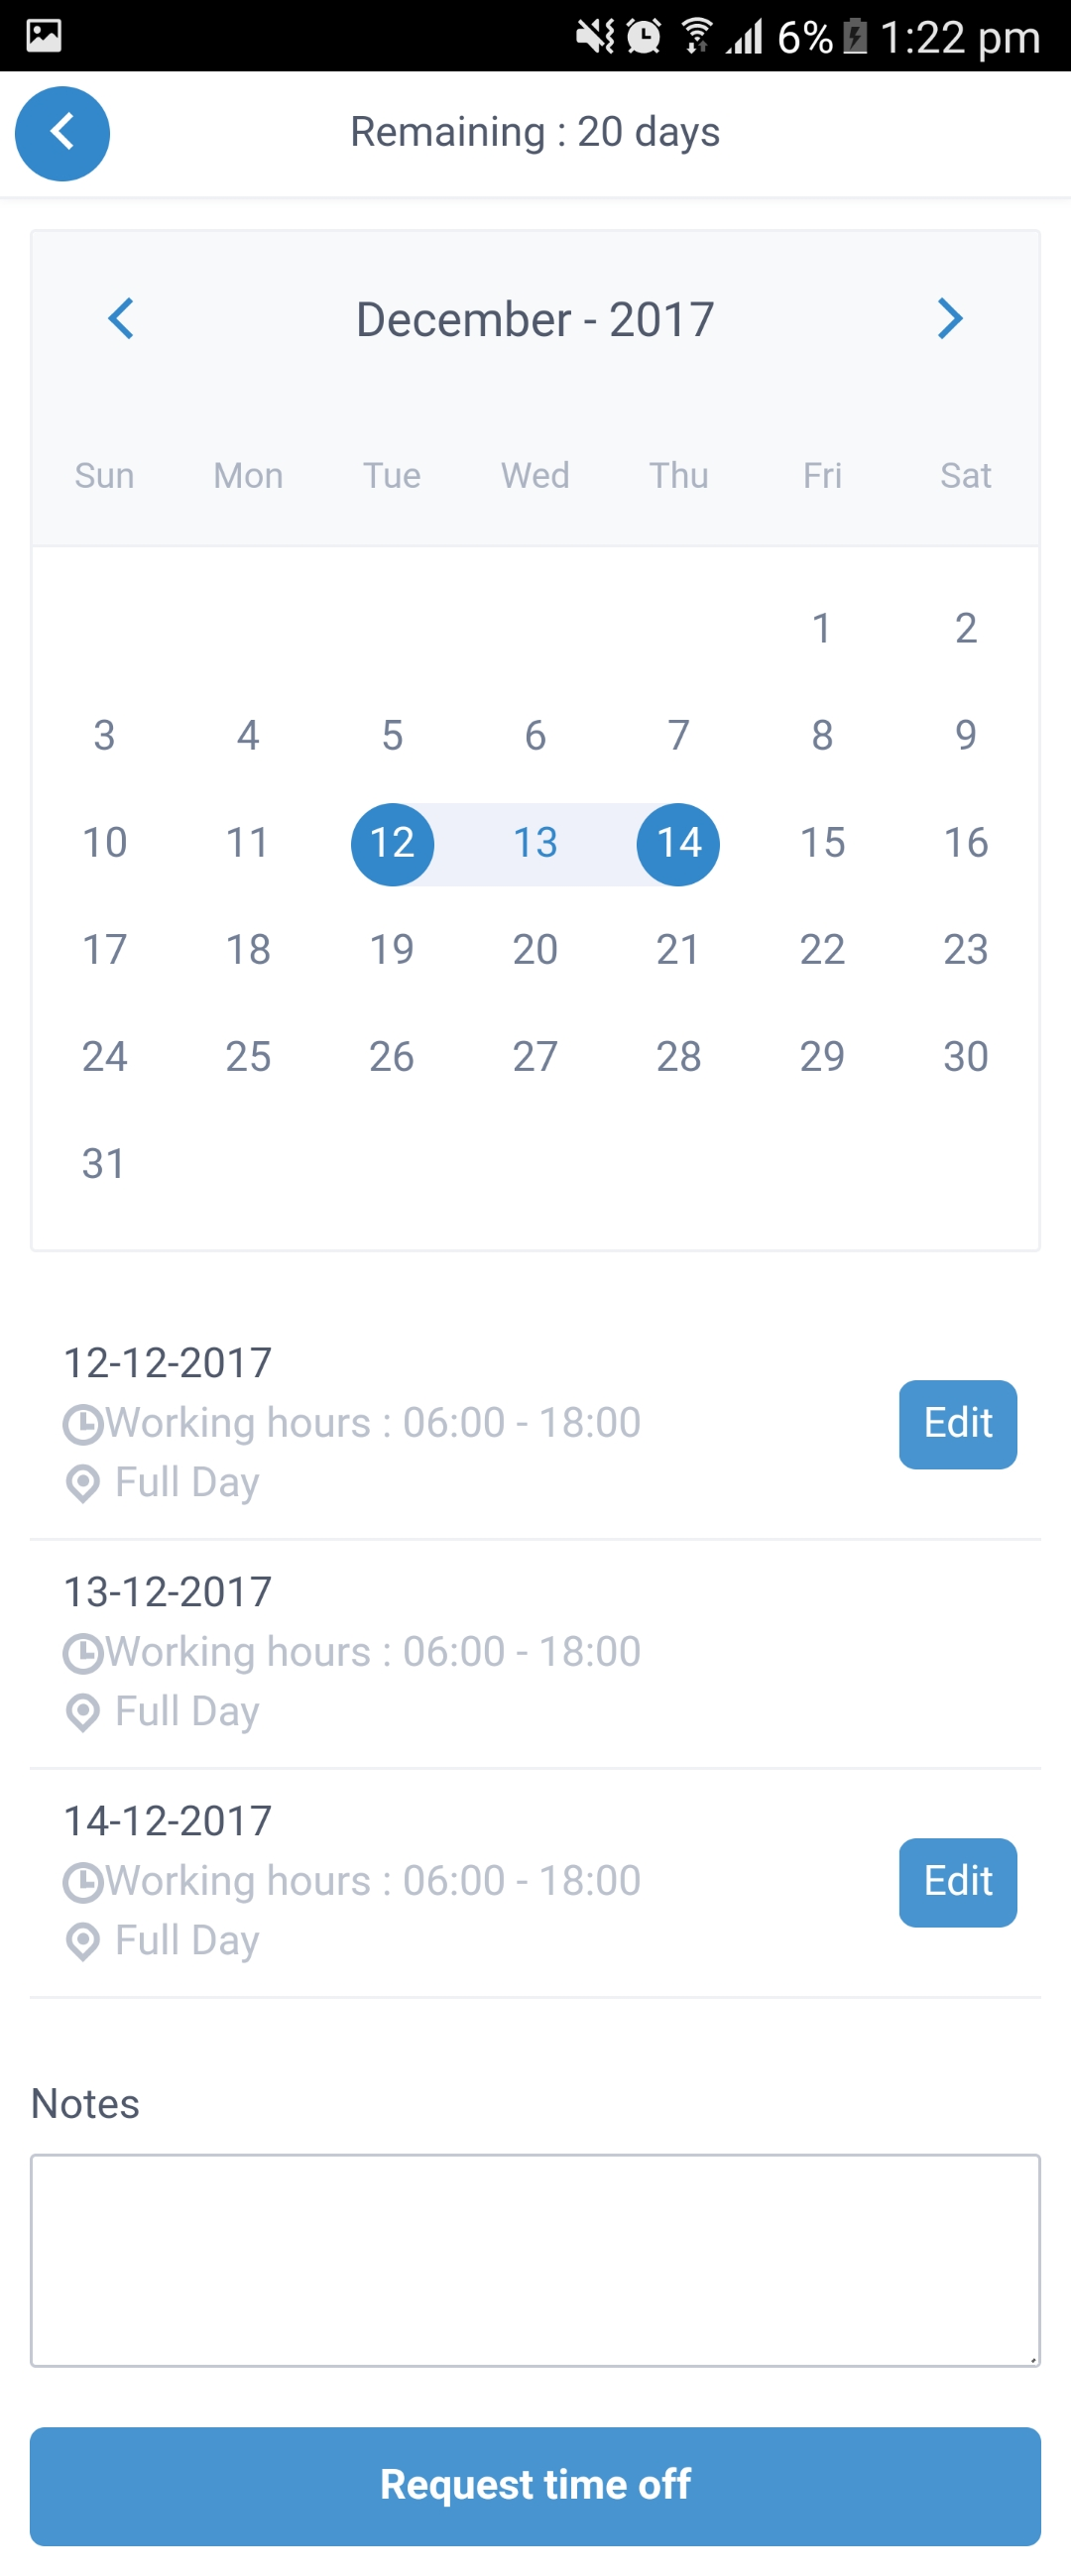 Employee Holiday App